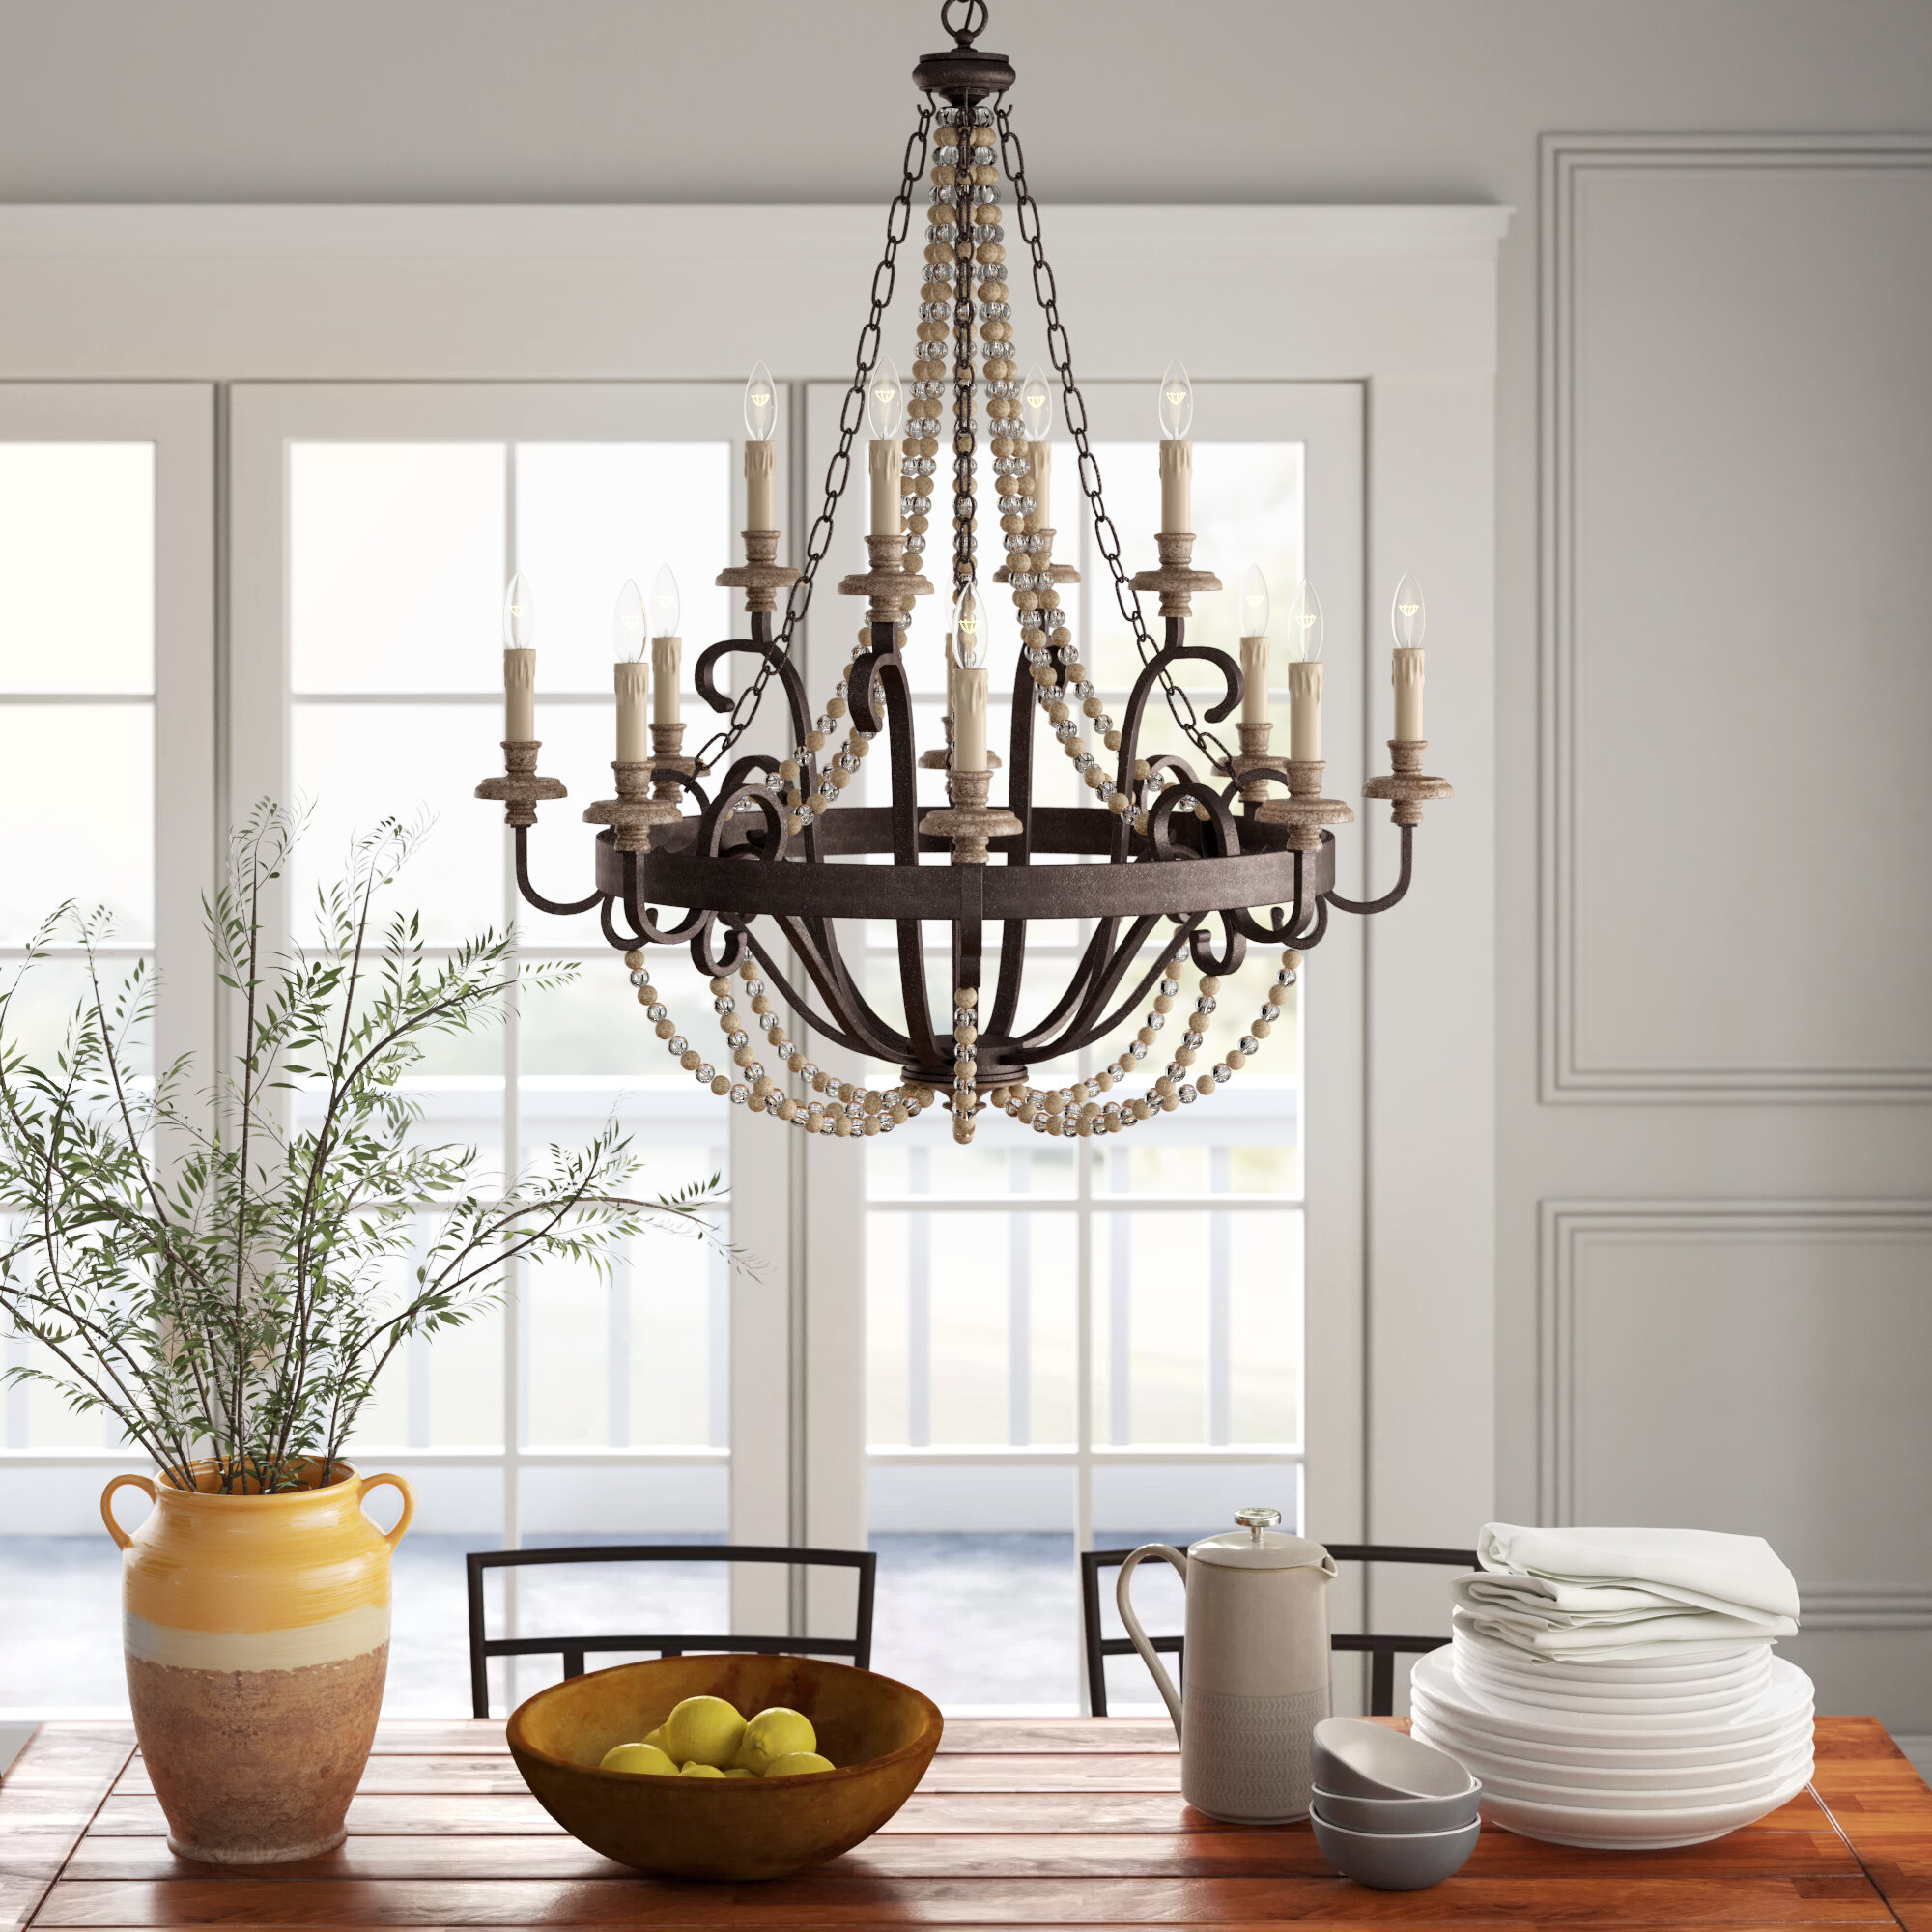 Birch Lane Aaden 12 Light Candle Style Empire Chandelier With Beaded Accents Reviews Wayfair